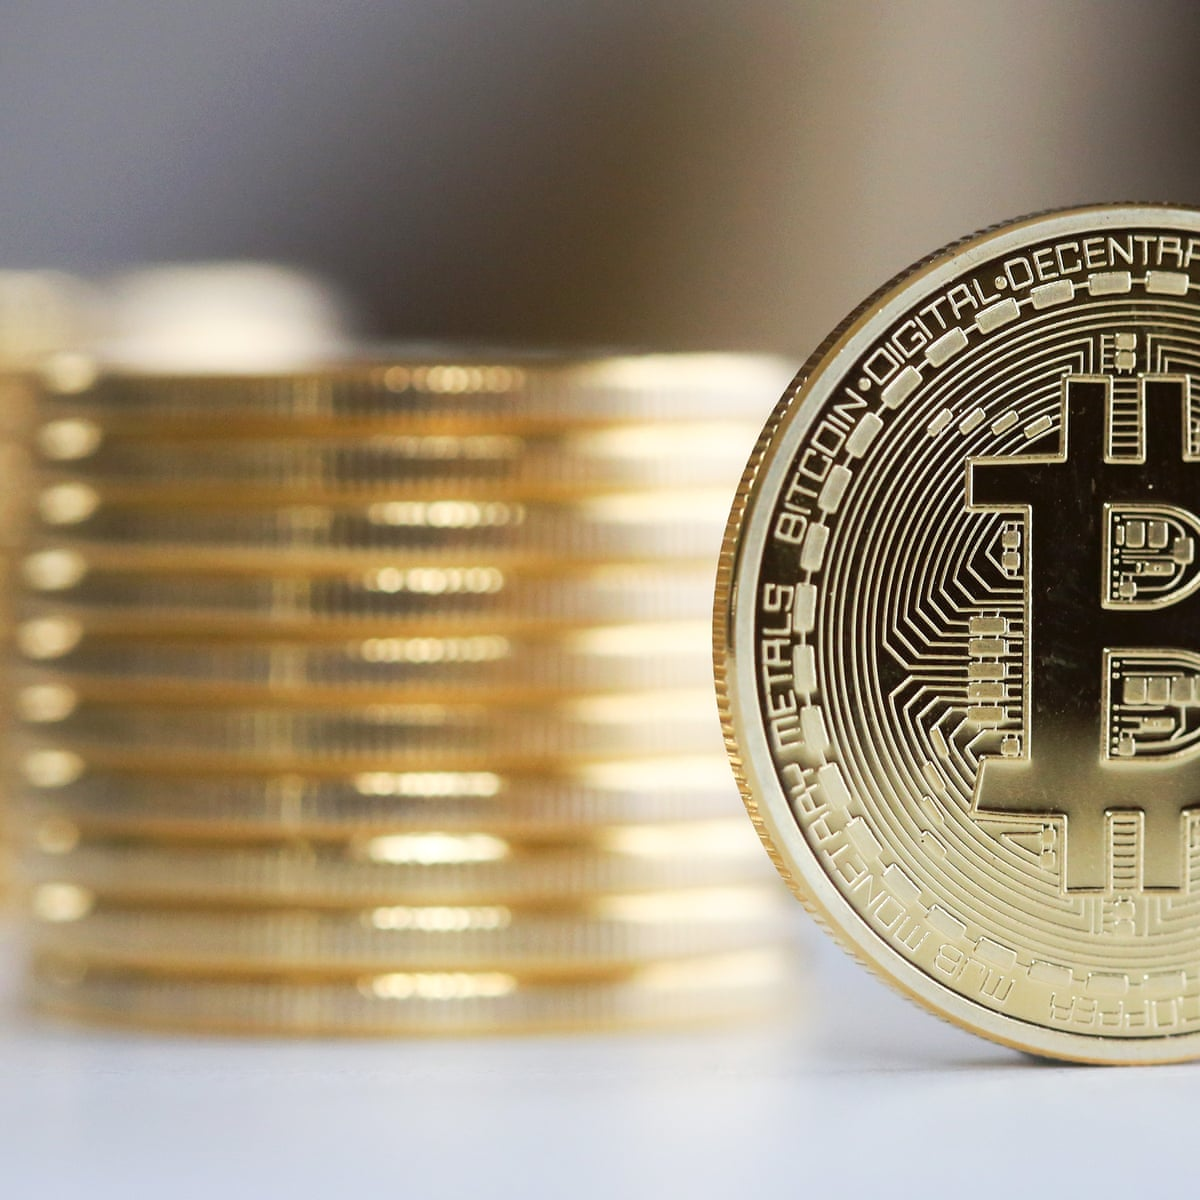 Bitcoin Is A Fraud That Will Blow Up Says Jp Morgan Boss Technology The Guardian